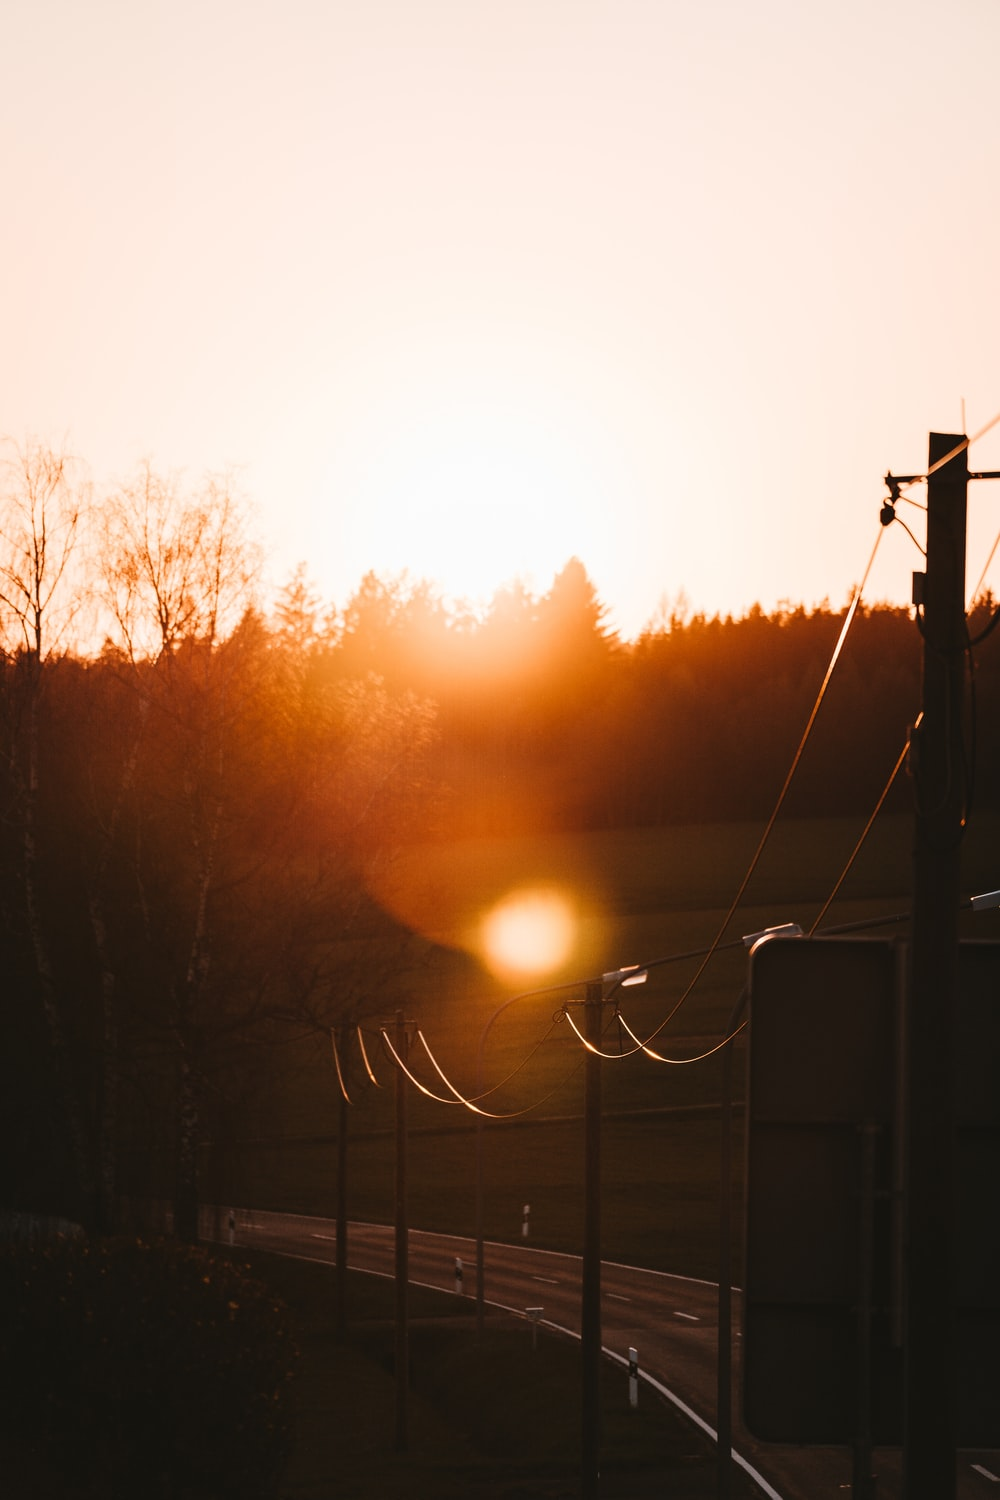 sun setting over trees and electric post